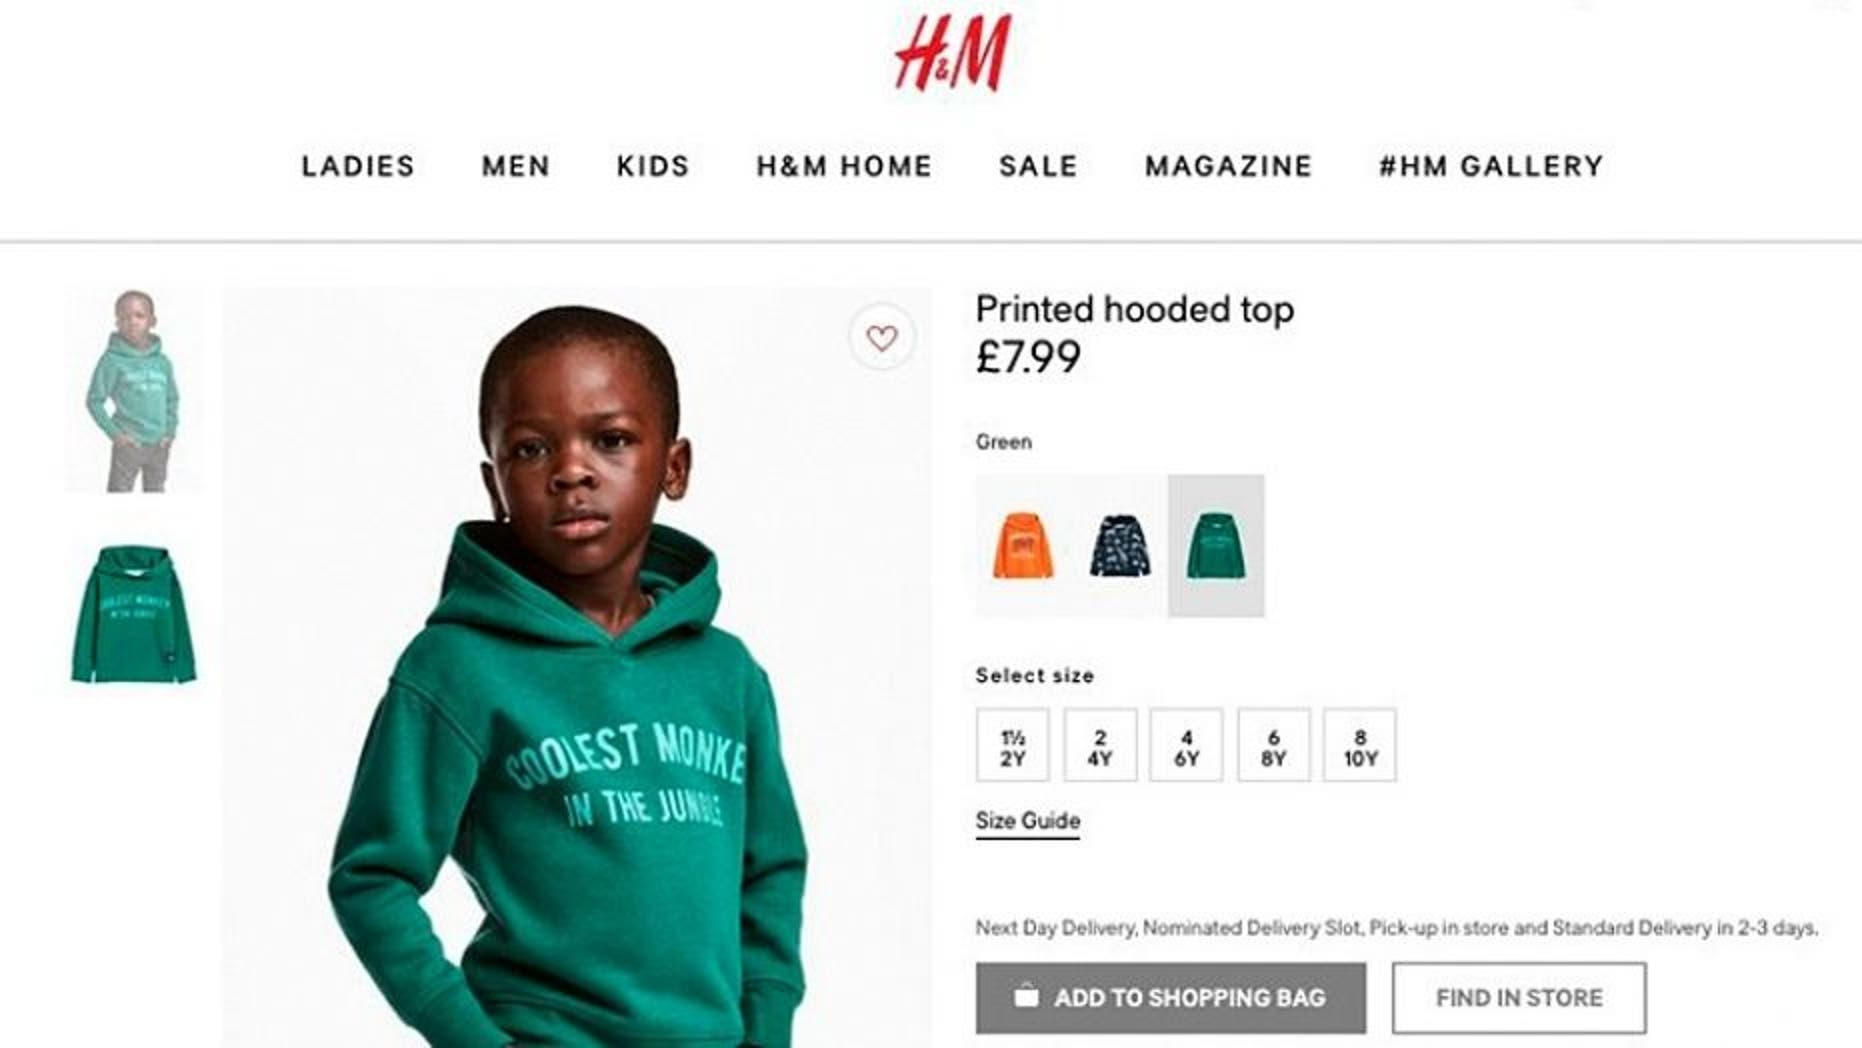 Family Of Hm Coolest Monkey Ad Model Forced To Move Due To